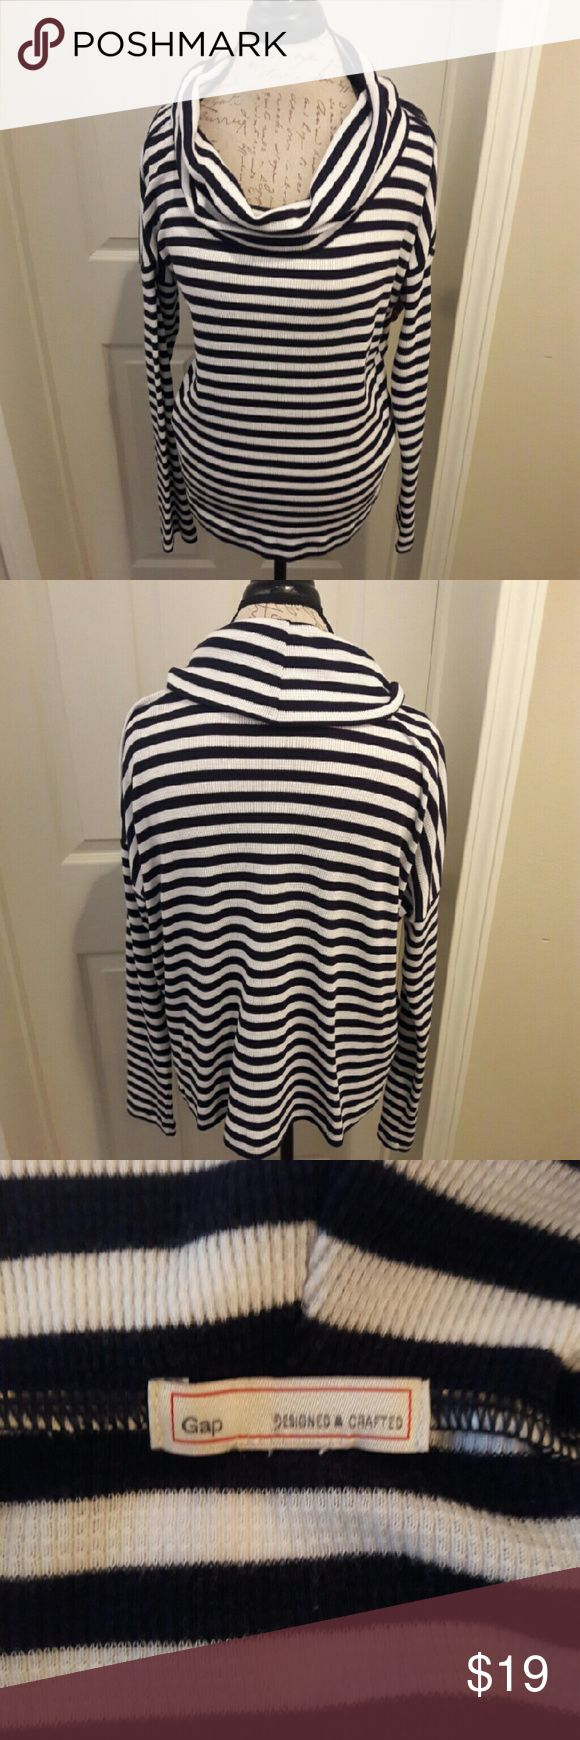 Gap - striped cowl neck shirt In perfect condition. Like new. Gorgeous navy and white stripes long sleeve top. Nice and warm. Great soft material. Perfect for winter. This is a slouchy top. Has a lot of room. Not form fitting. Super cute! From a smoke and pet free home. Fast shipping!  *No trades *All offers considered  *I take offers on bundles and single items GAP Tops